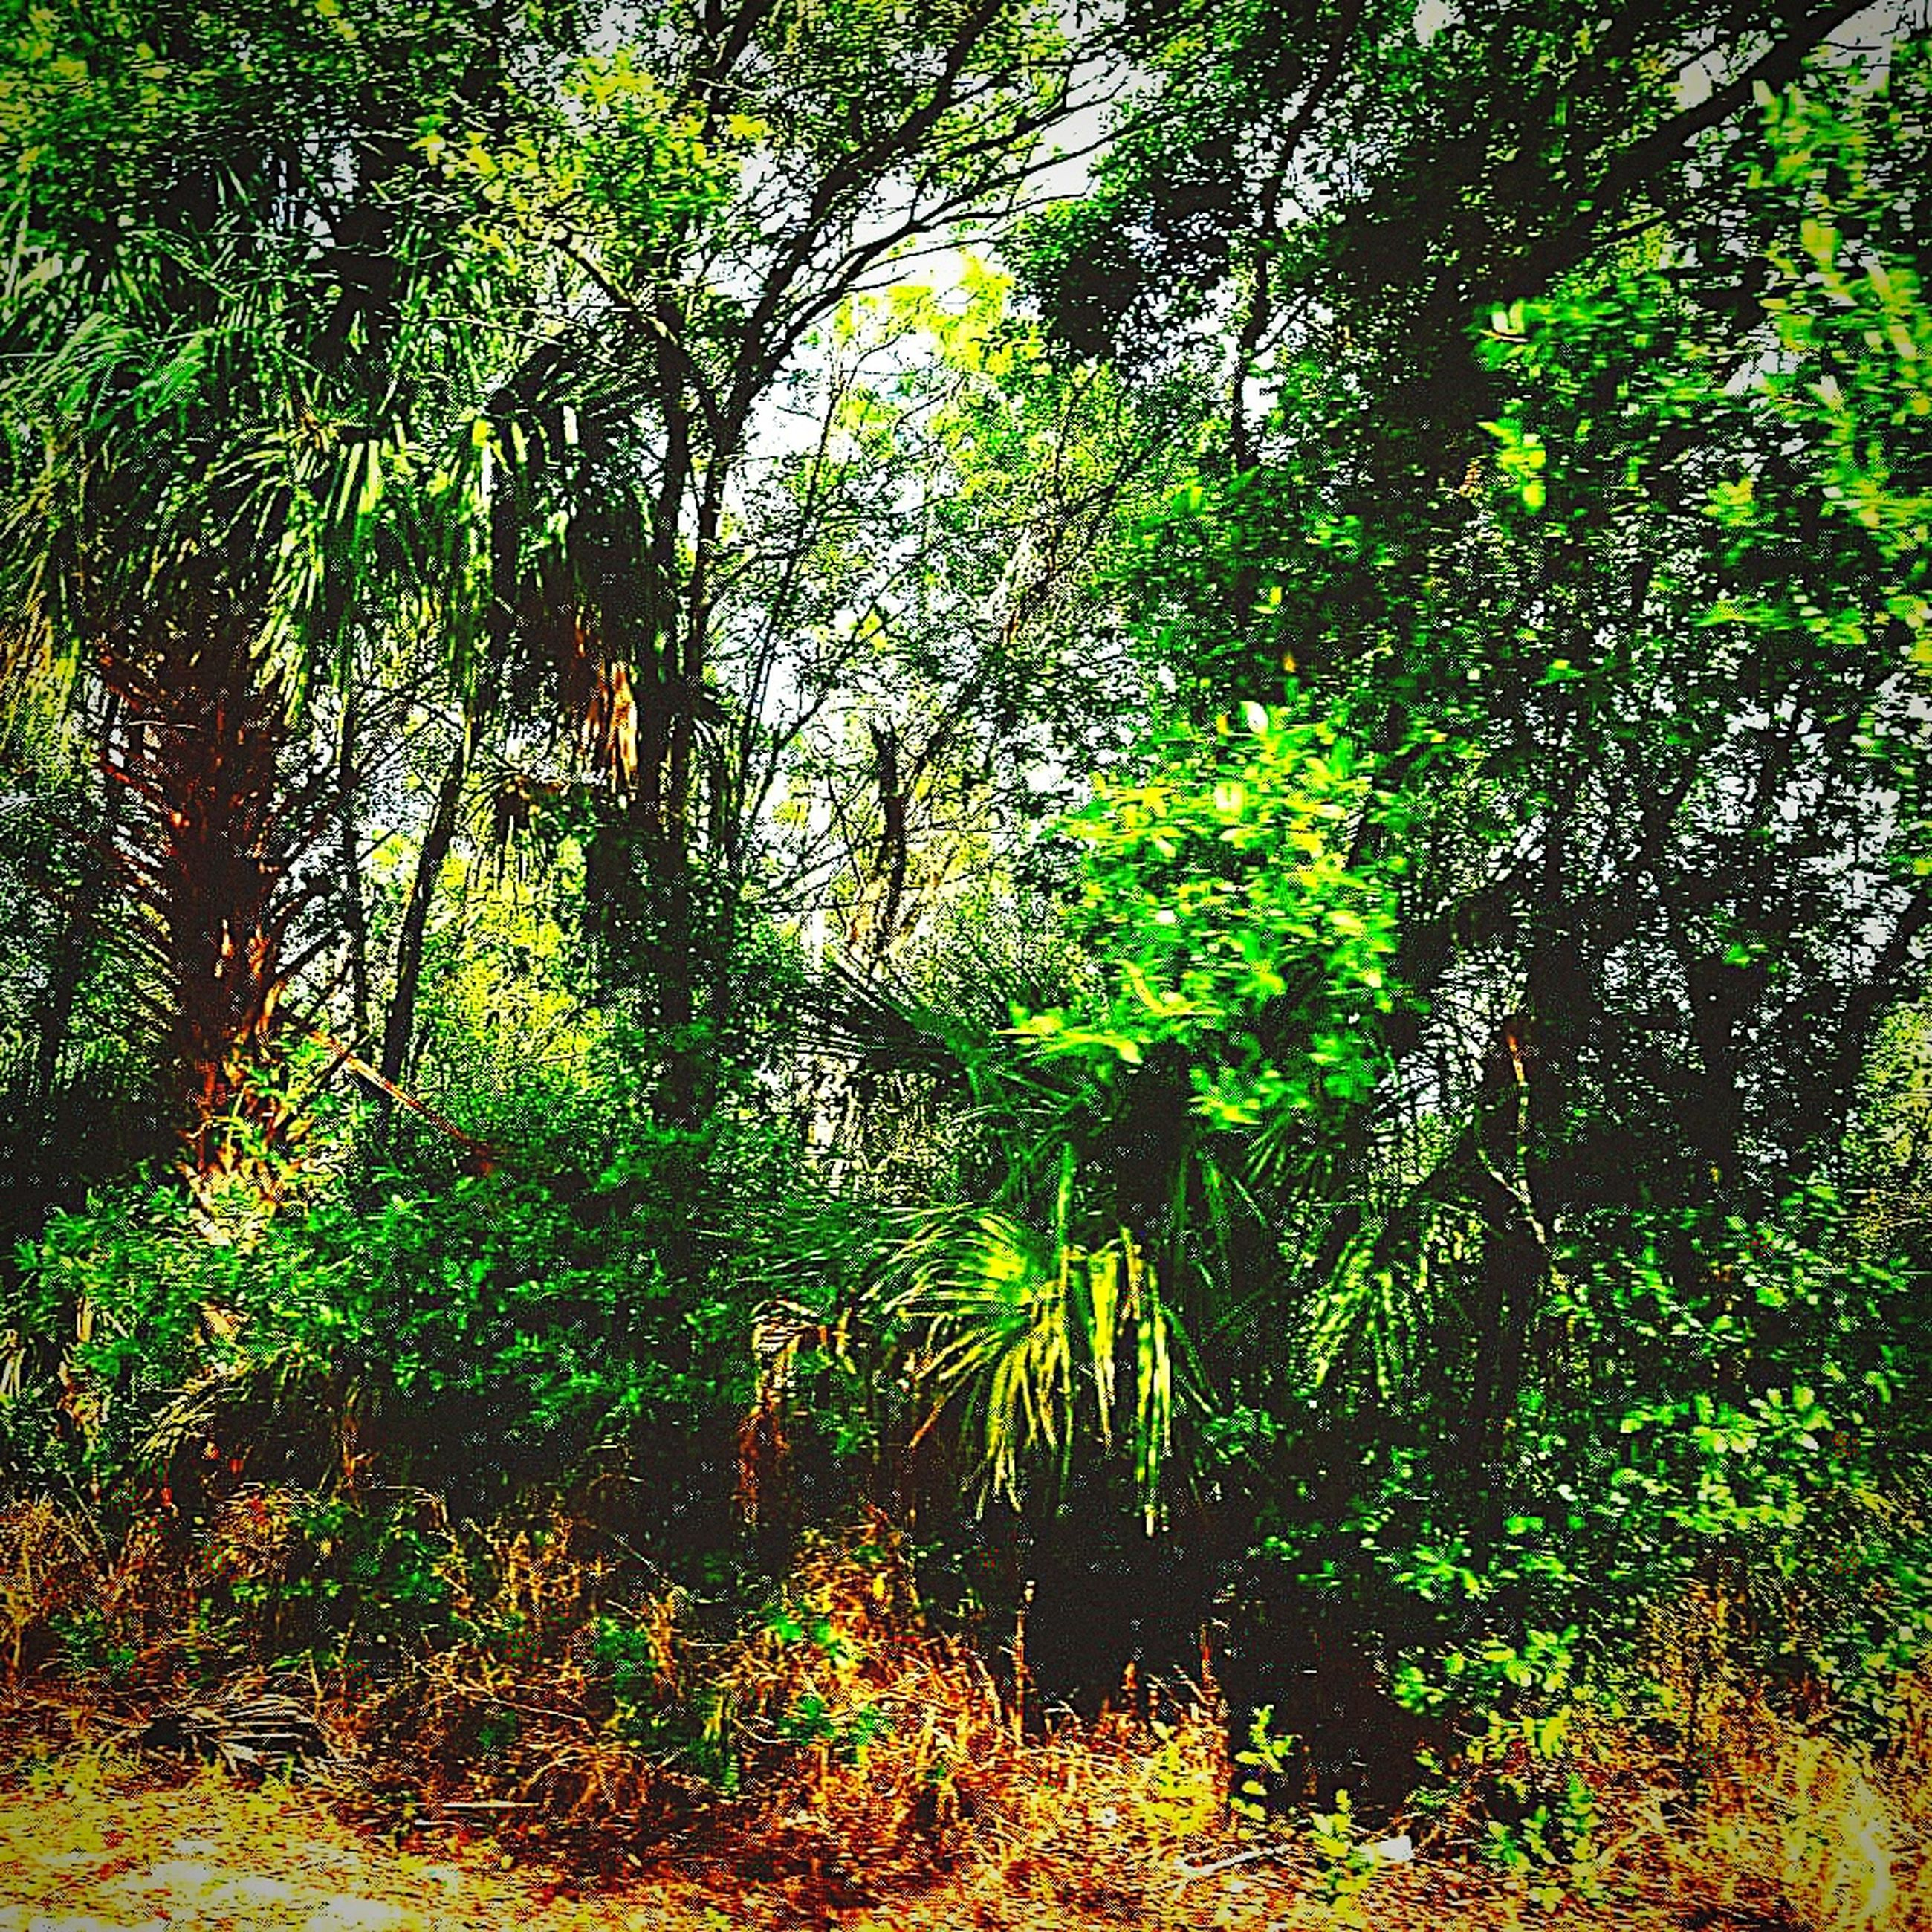 tree, plant, forest, land, growth, beauty in nature, tranquility, green color, nature, tranquil scene, scenics - nature, no people, day, woodland, foliage, outdoors, lush foliage, non-urban scene, idyllic, sunlight, rainforest